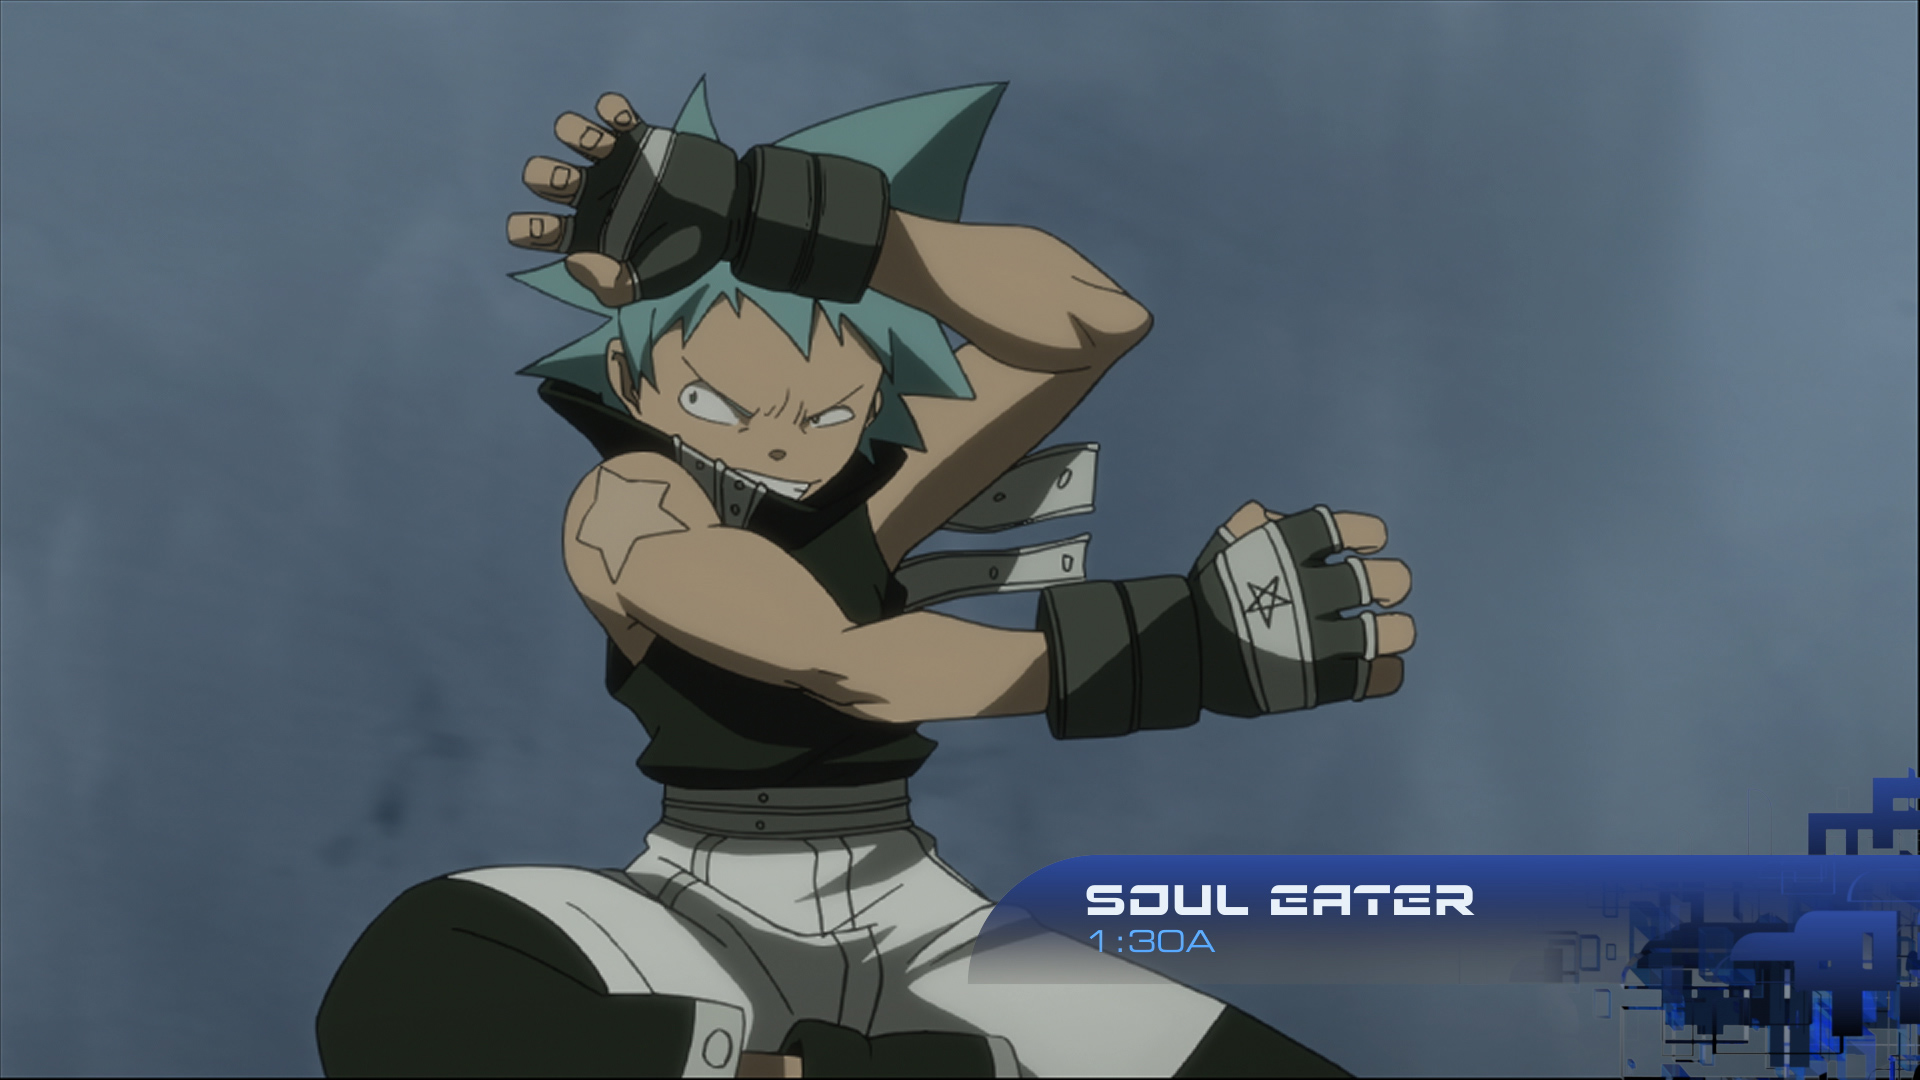 soul eater lower third.jpg